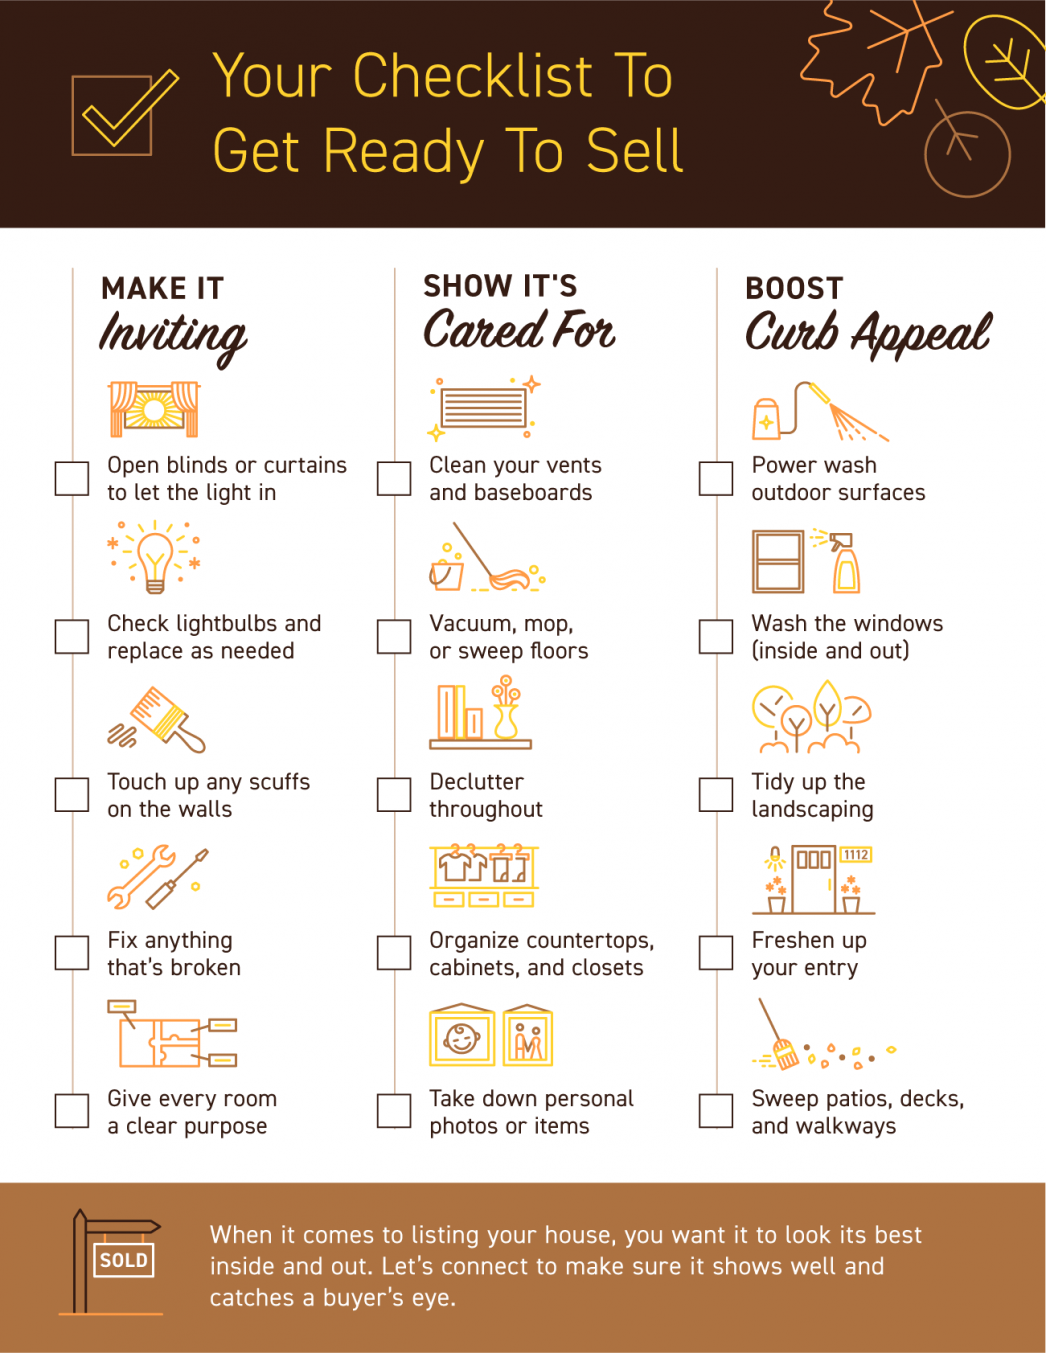 Your Checklist To Get Ready To Sell [INFOGRAPHIC] | MyKCM